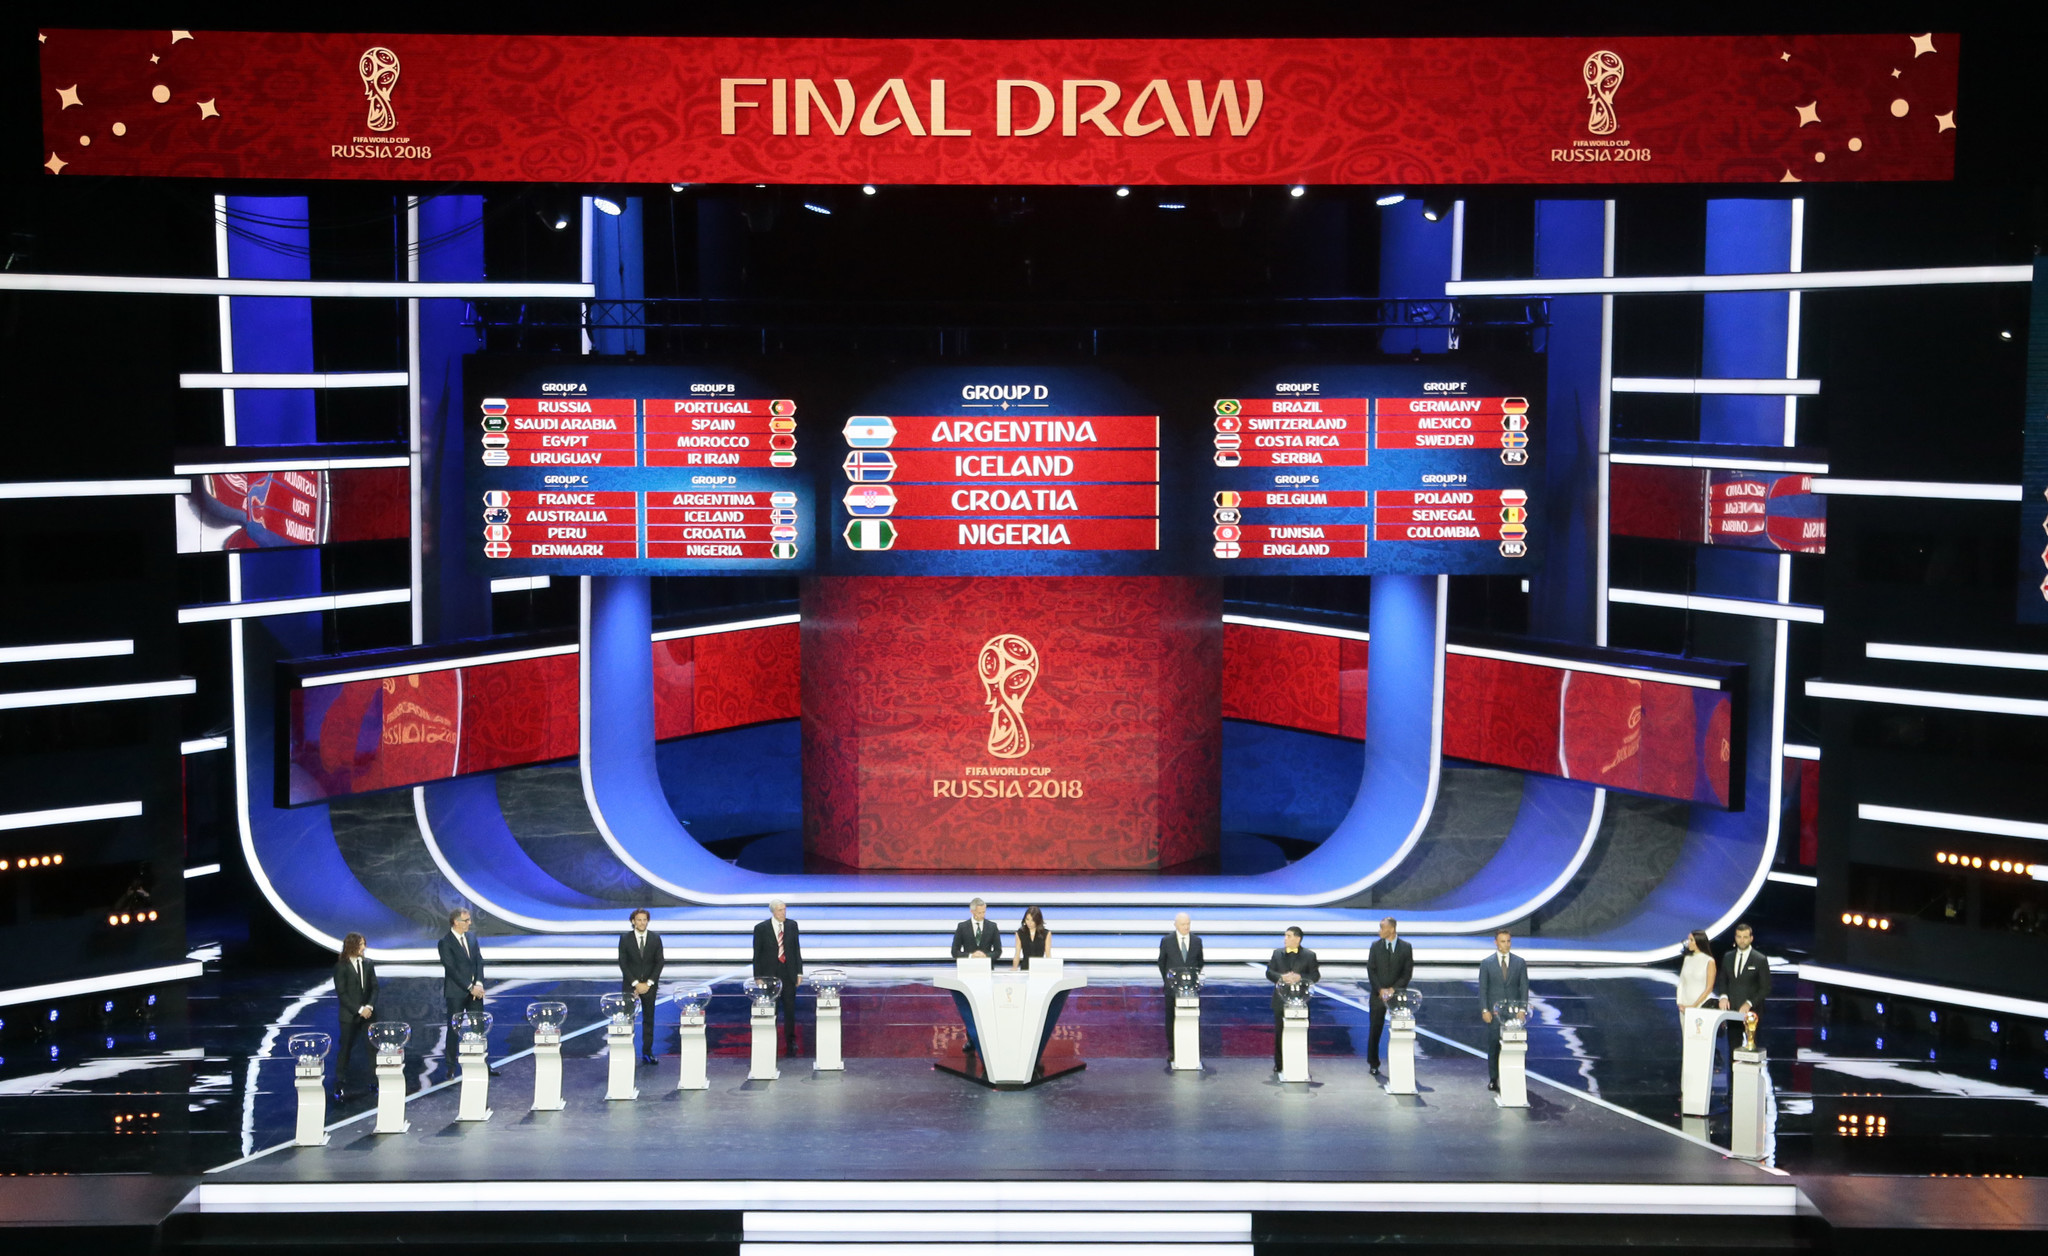 FIFA World Cup draw: Russia gets a soft landing and Mexico is in the Group of Death